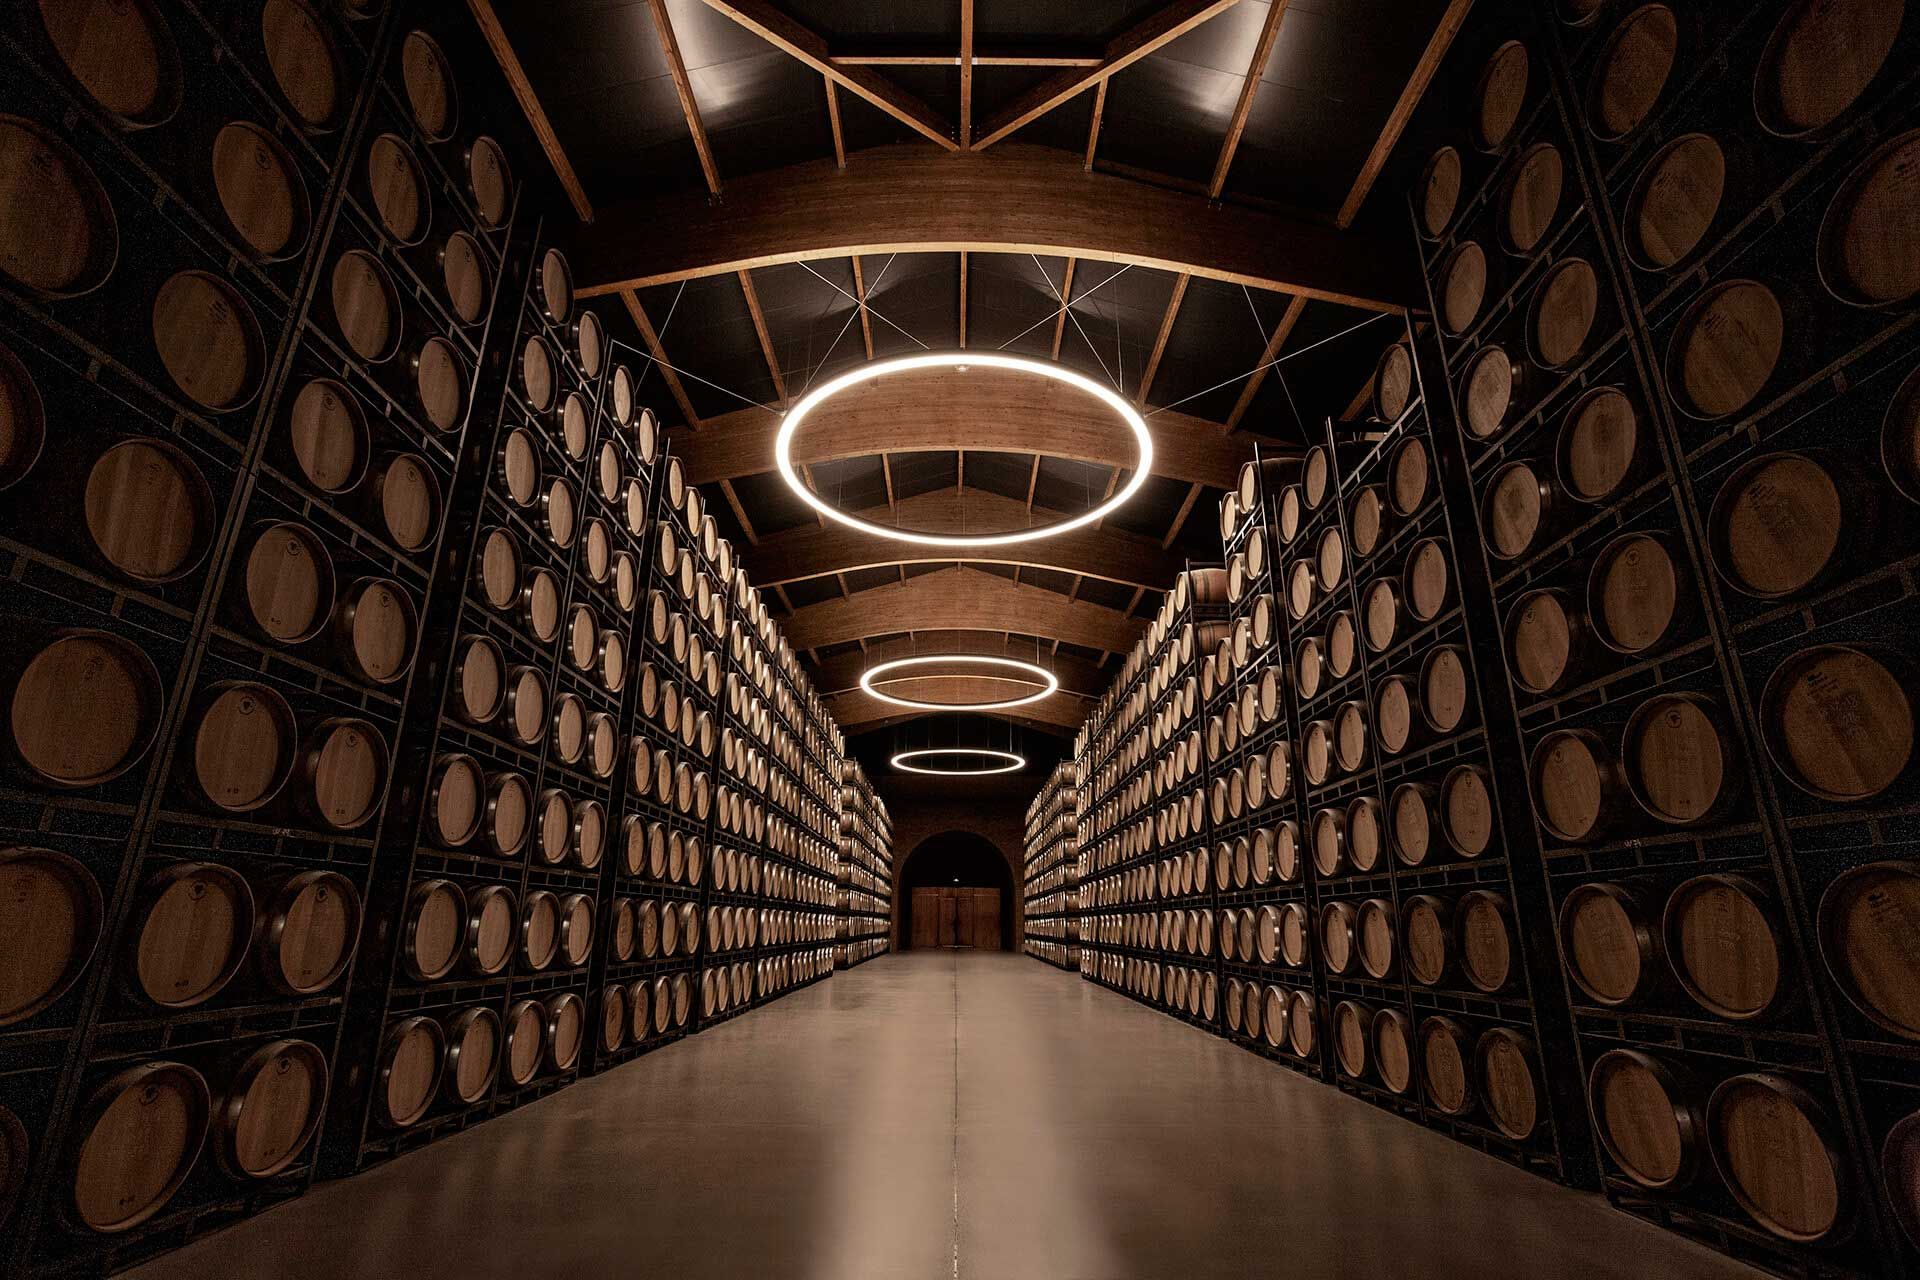 Construction of the Second largest Ageing Cellar in the World